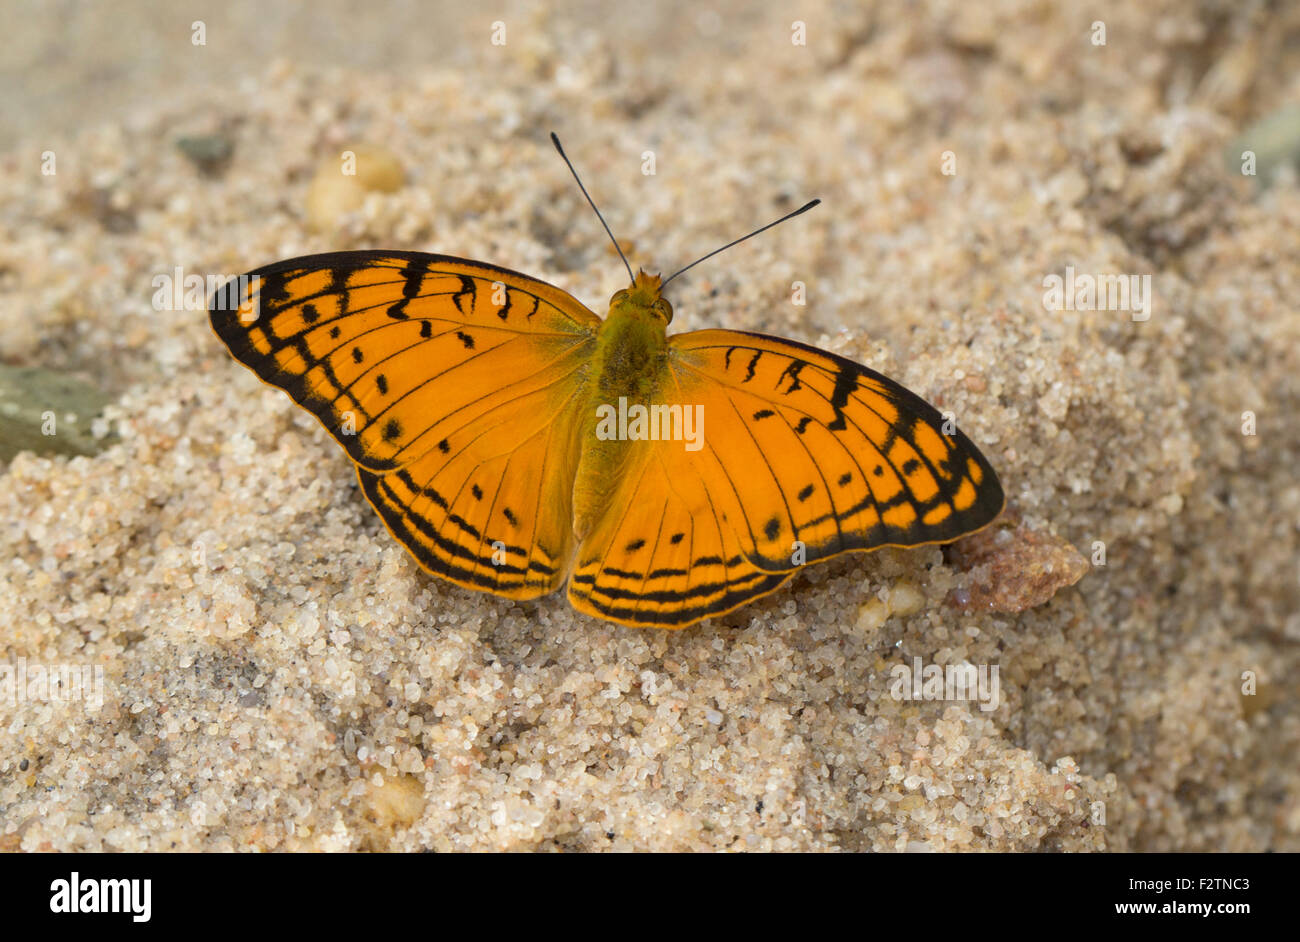 Bộ sưu tập cánh vẩy 5 - Page 5 Leopard-butterfly-phalanta-madagascariensis-in-a-gorge-isalo-national-F2TNC3